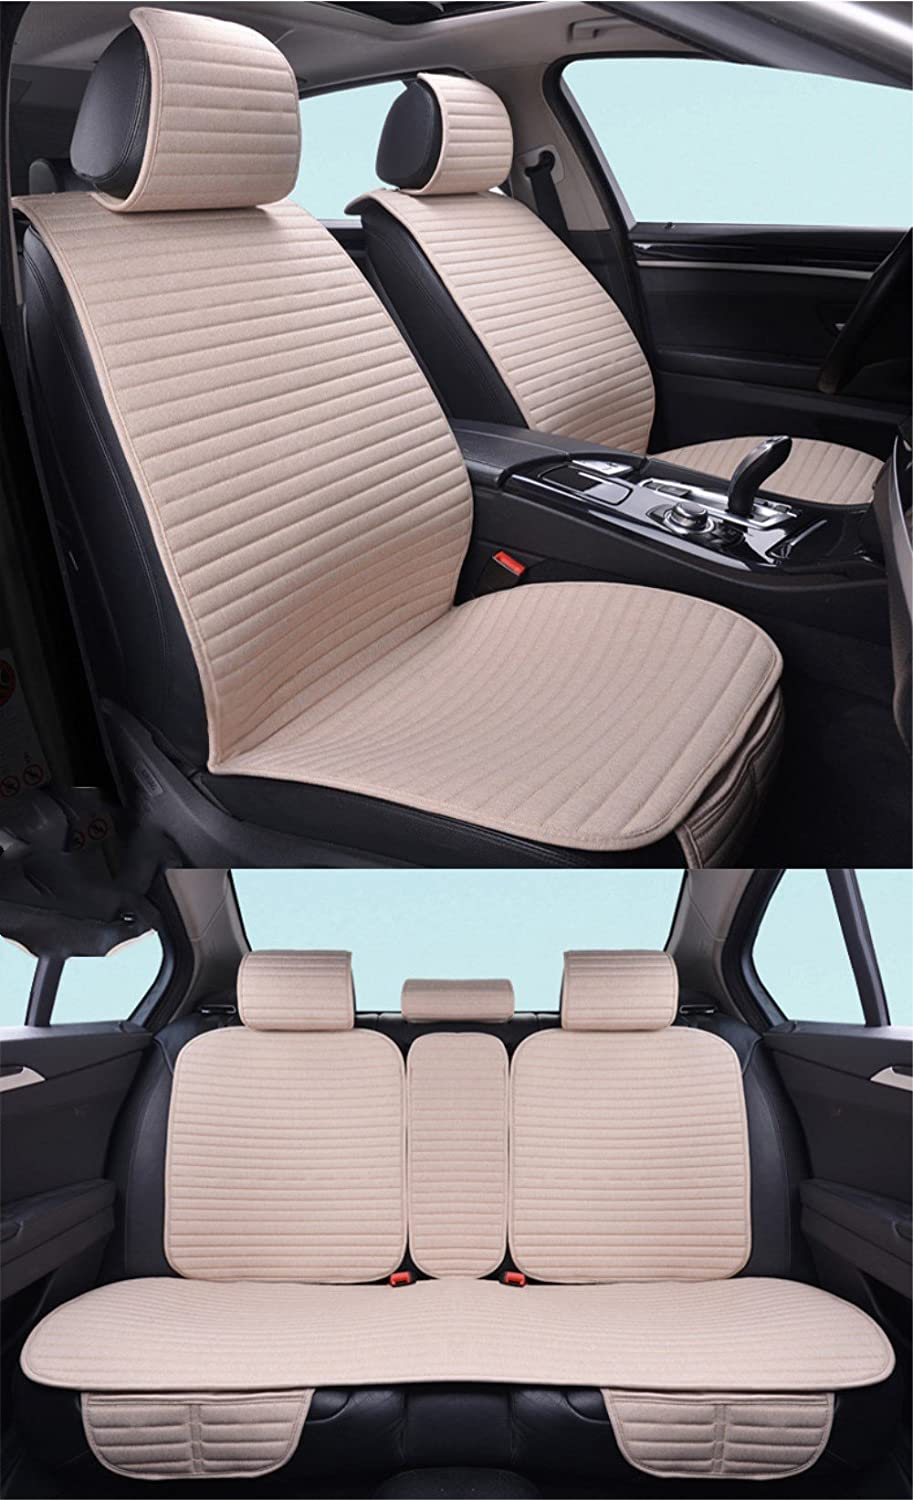 HONGLICar Waist Belt Waist Memory Cotton Backrest Seat Driver Car Four seasons Waist pads Baby Car Seats & Accessories